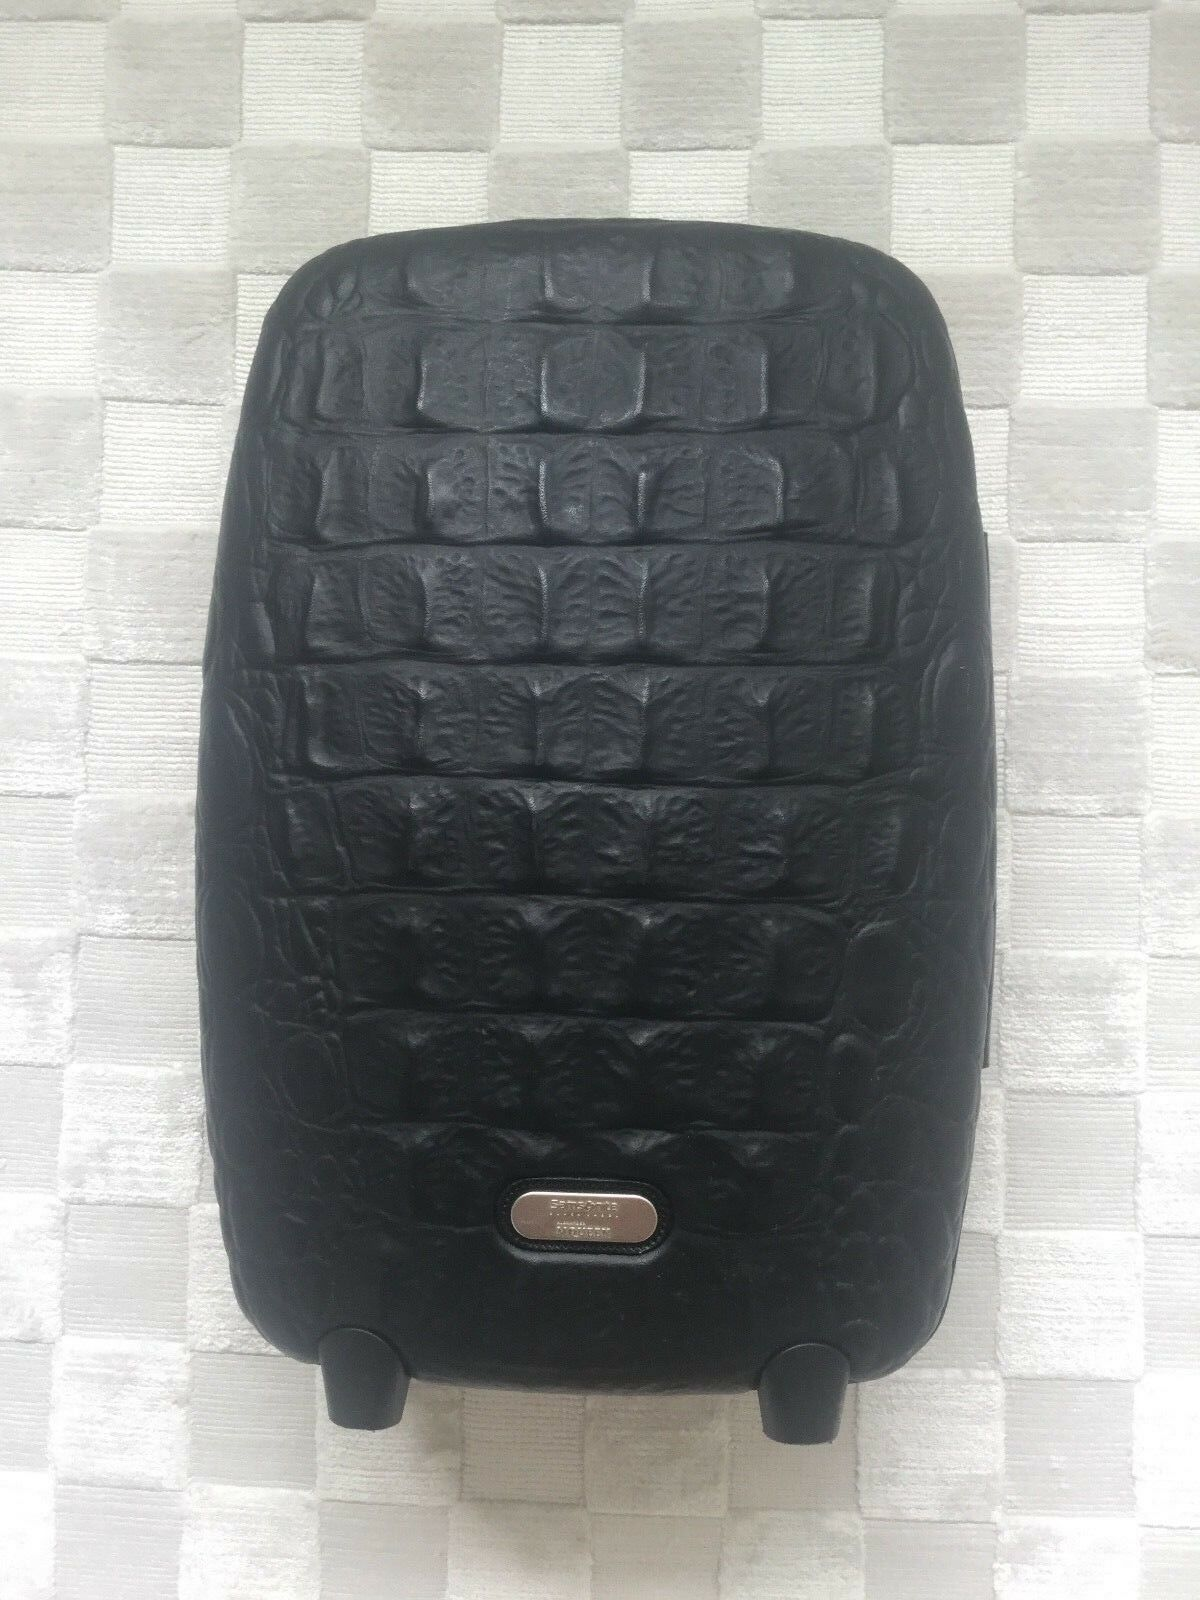 Primary image for ALEXANDER McQUEEN SAMSONITE BLACK CROCODILE TROLLEY UPRIGHT LUGGAGE SUITCASE